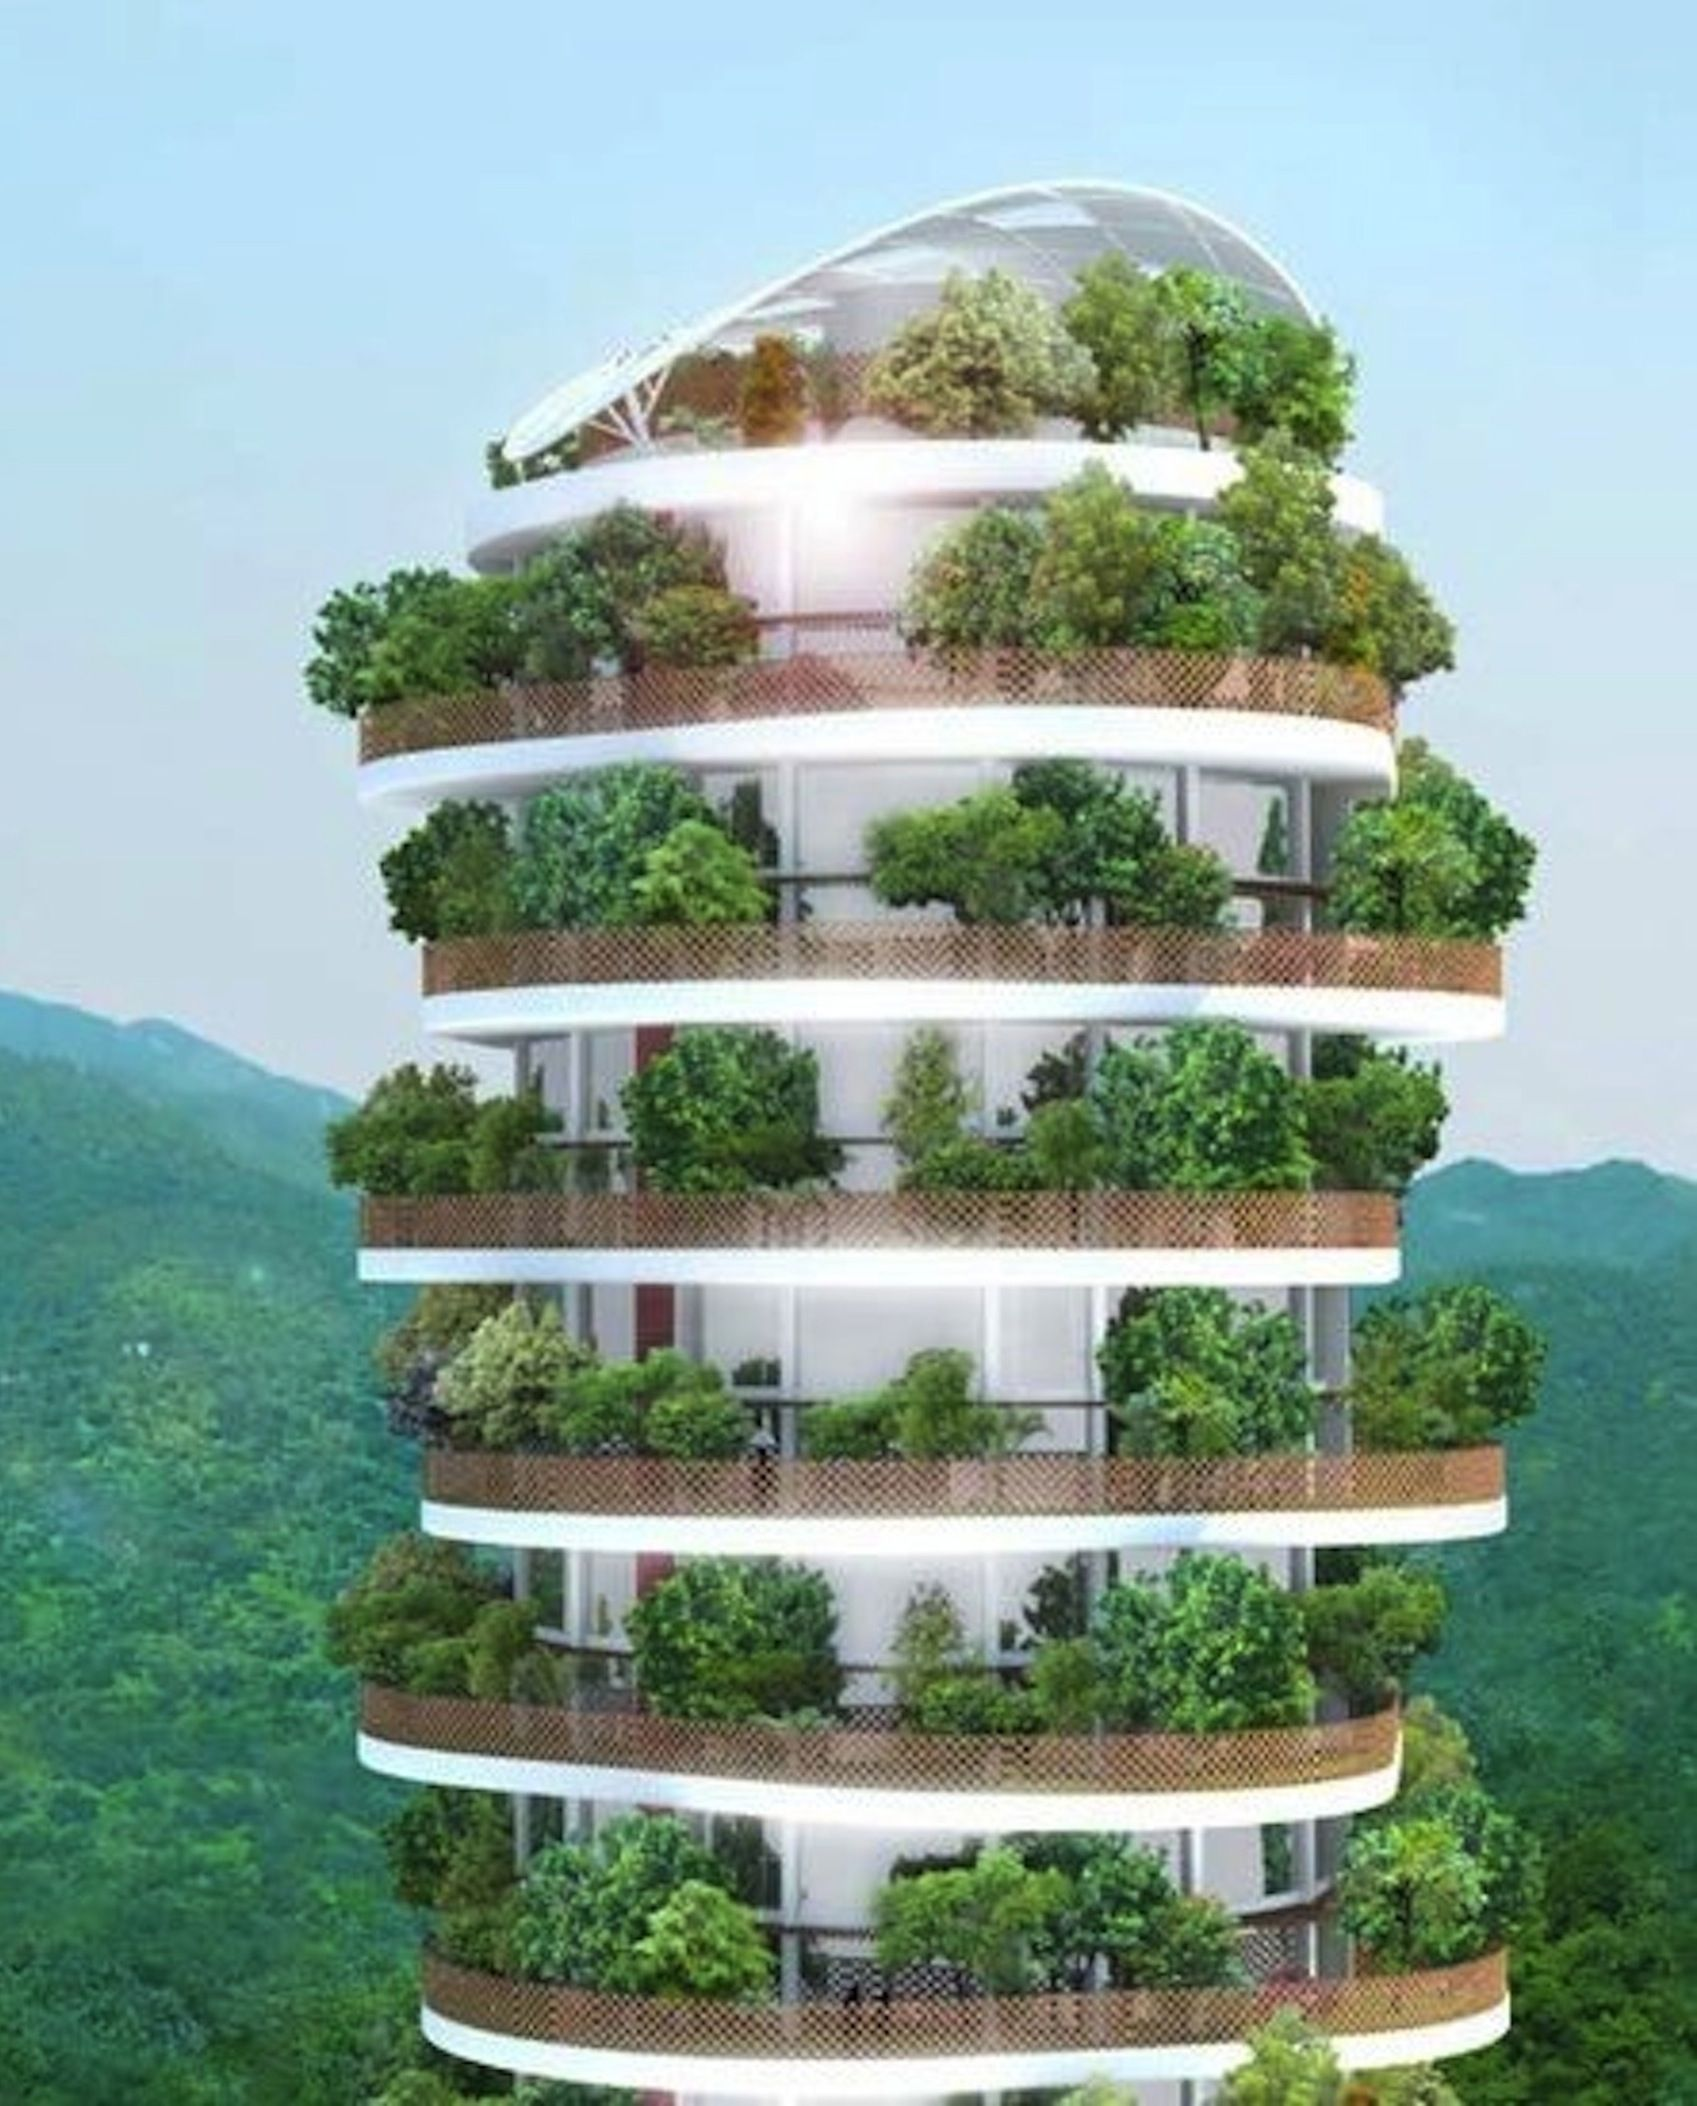 Home Design Ideas Hong Kong: Green Architecture, Modern Tree